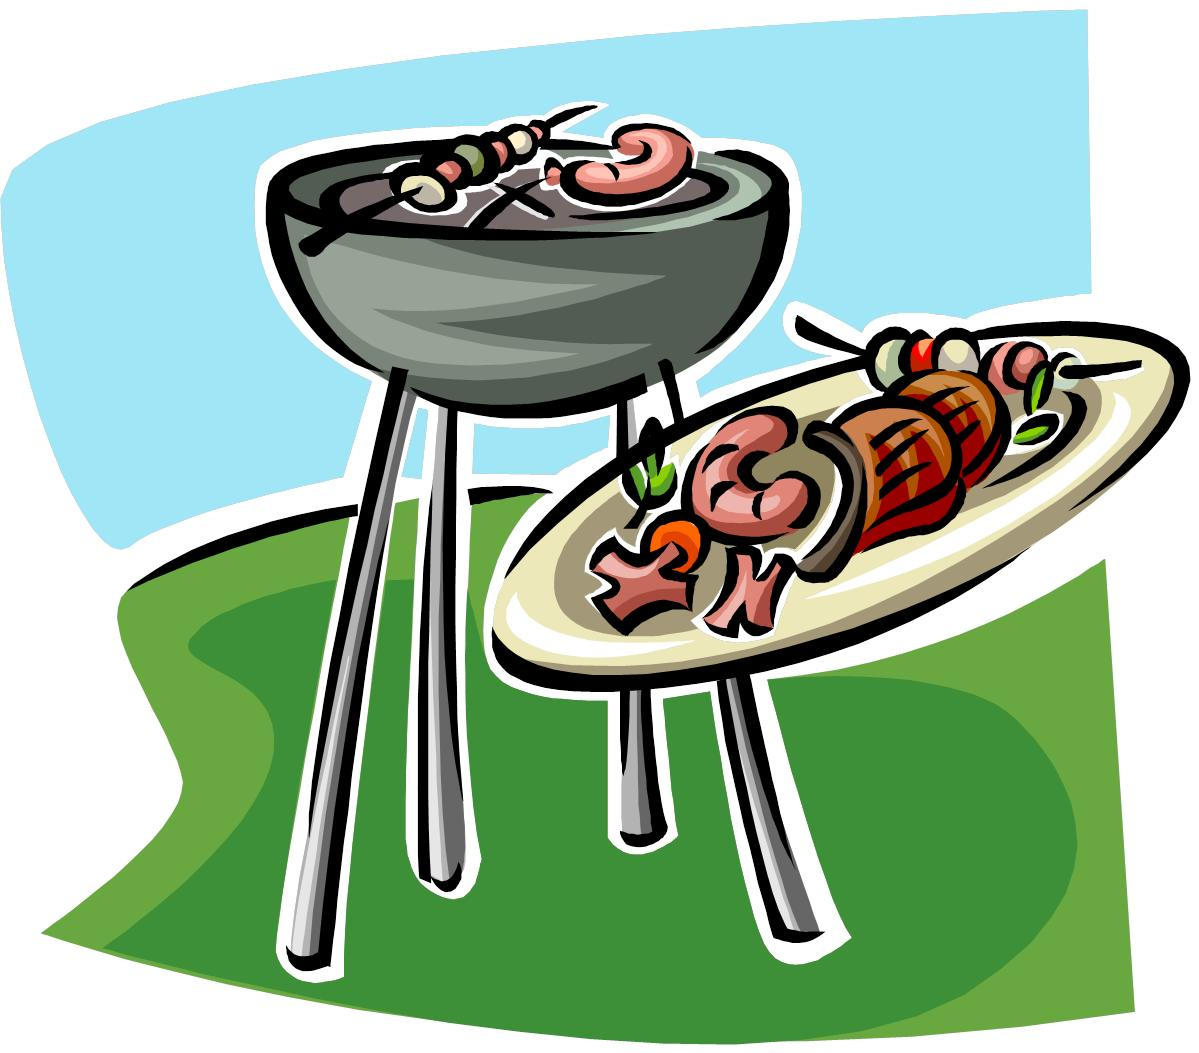 backyard barbecue clip art backyard backyard ideas blog rh oluyue com cookout clipart free cookout clipart pictures